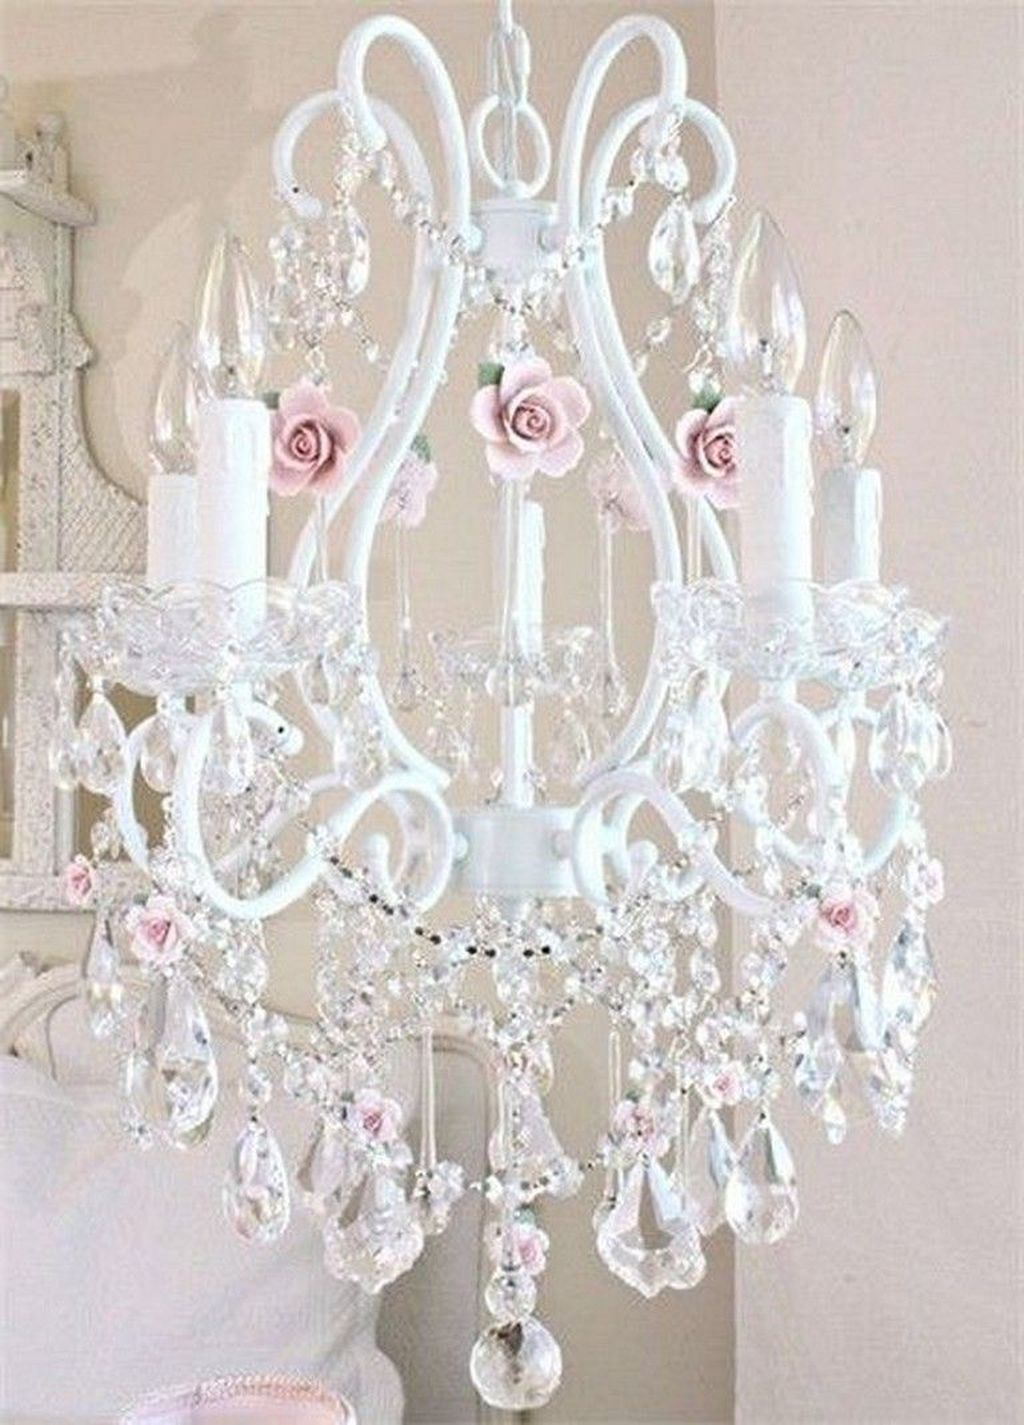 100 Incroyable Idées Lustre Style Shabby Chic